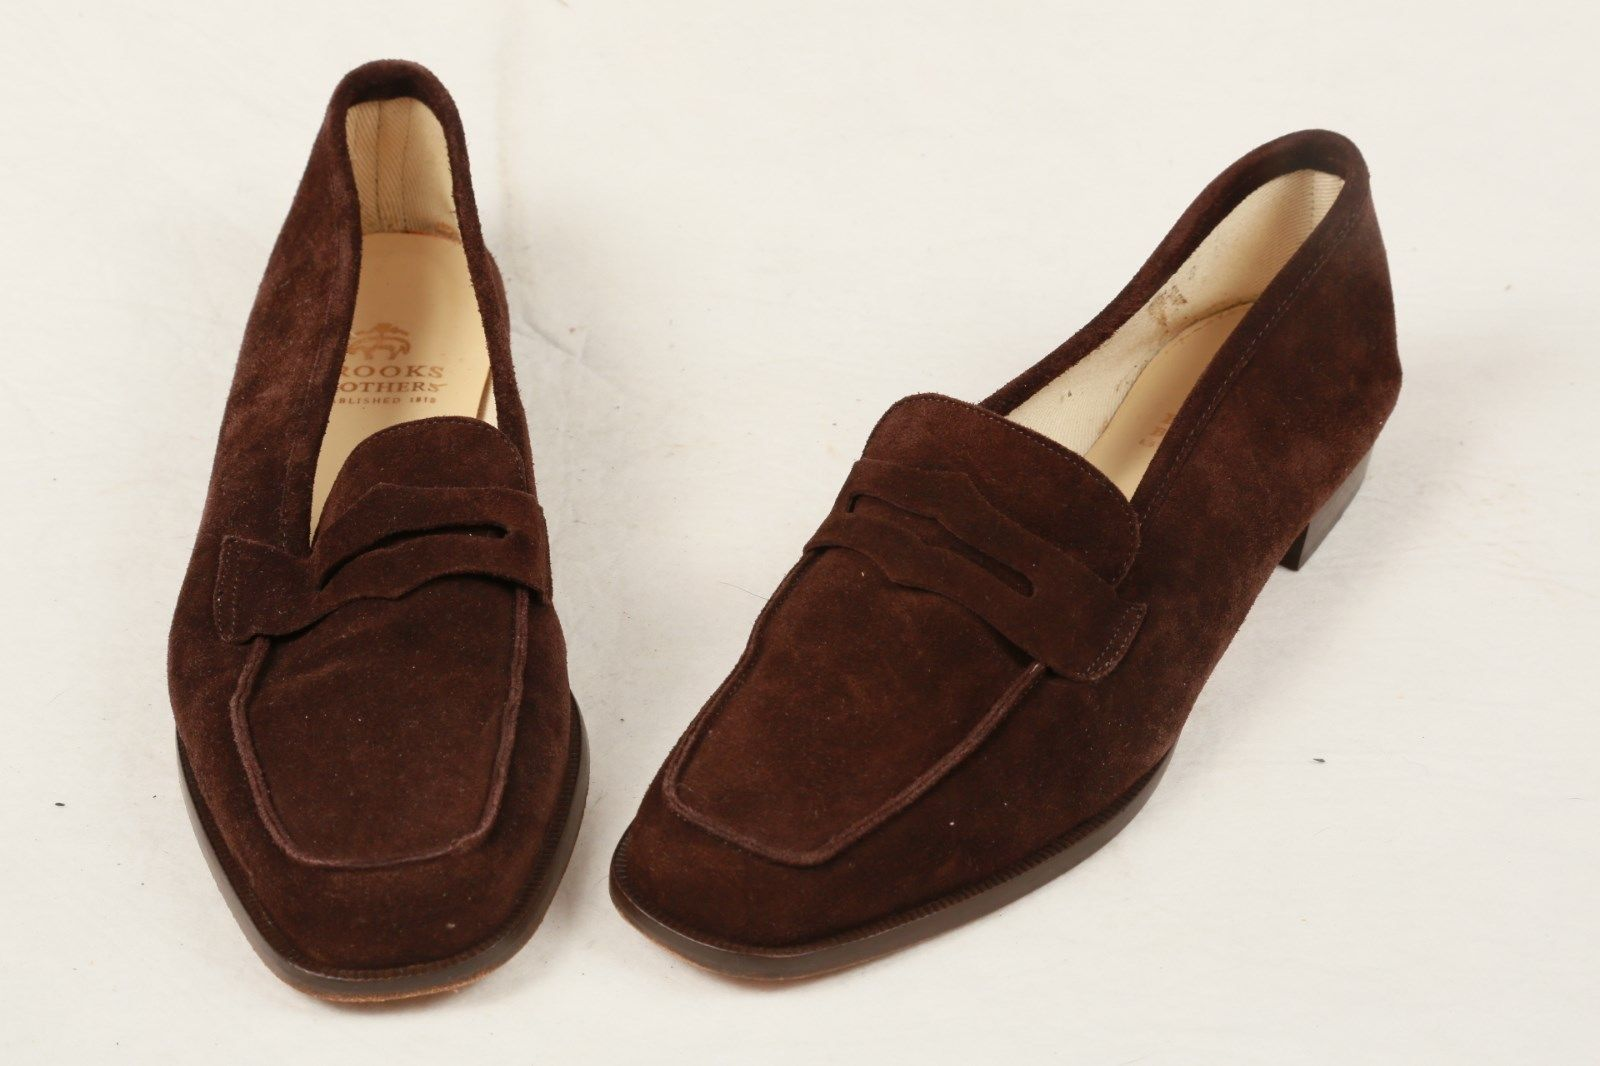 Brooks Brothers Brown Suede Leather Penny Loafers Womens 8 M Italy Sold for  $98